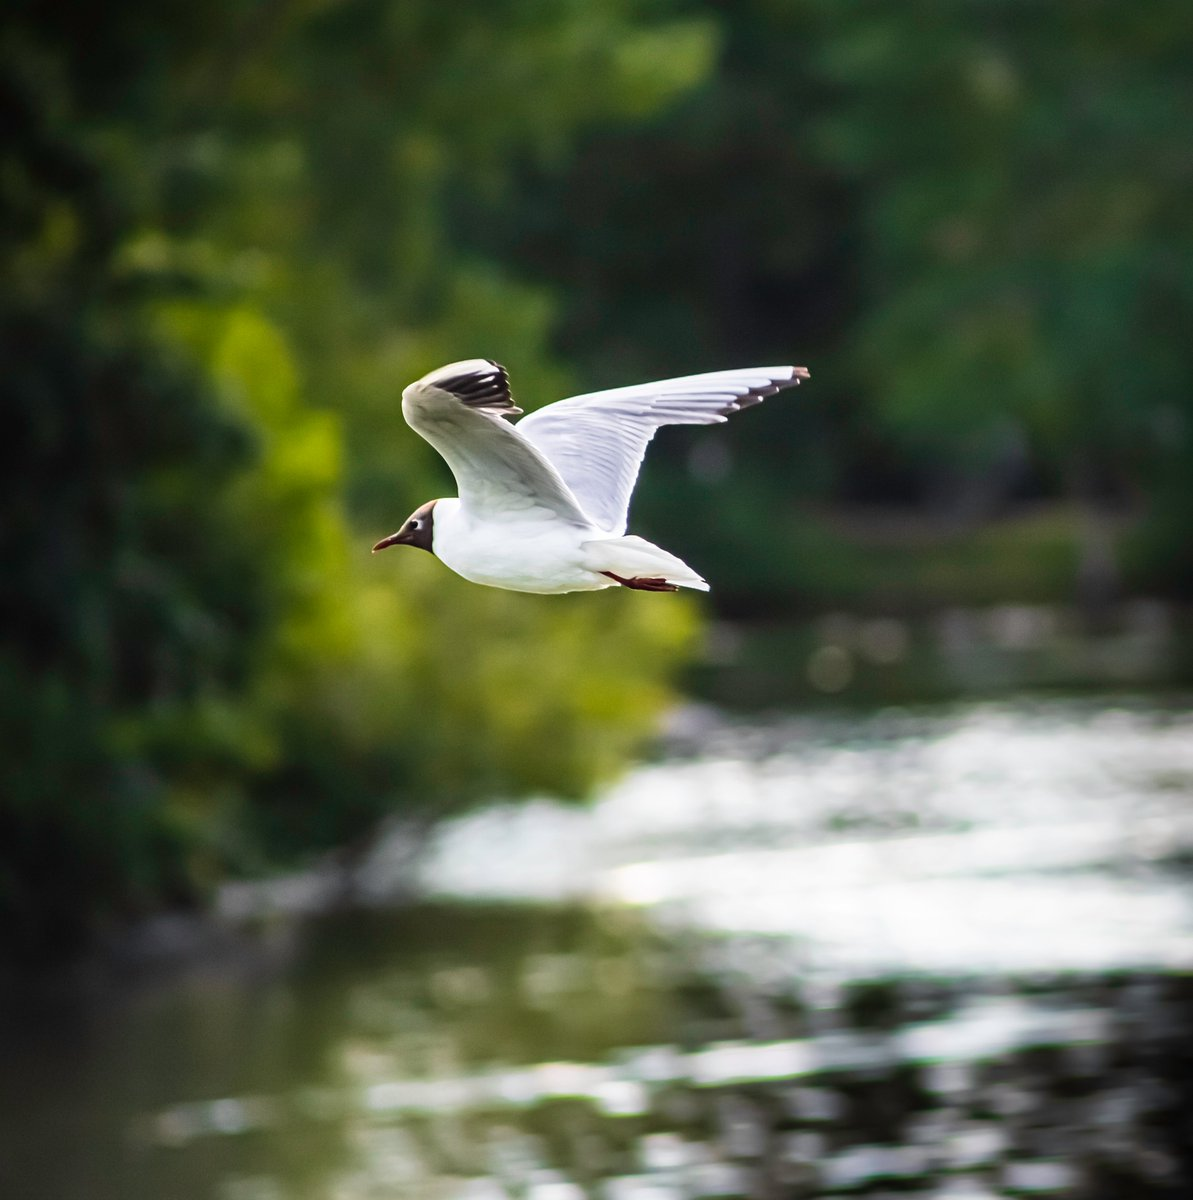 Another from my recent lake visit.  #naturelovers #birdwatching #wildlifephotography #birdphotography #wildlifephoto #wildlifelovers #birds #nature #bird #animals #gull #animal #photography